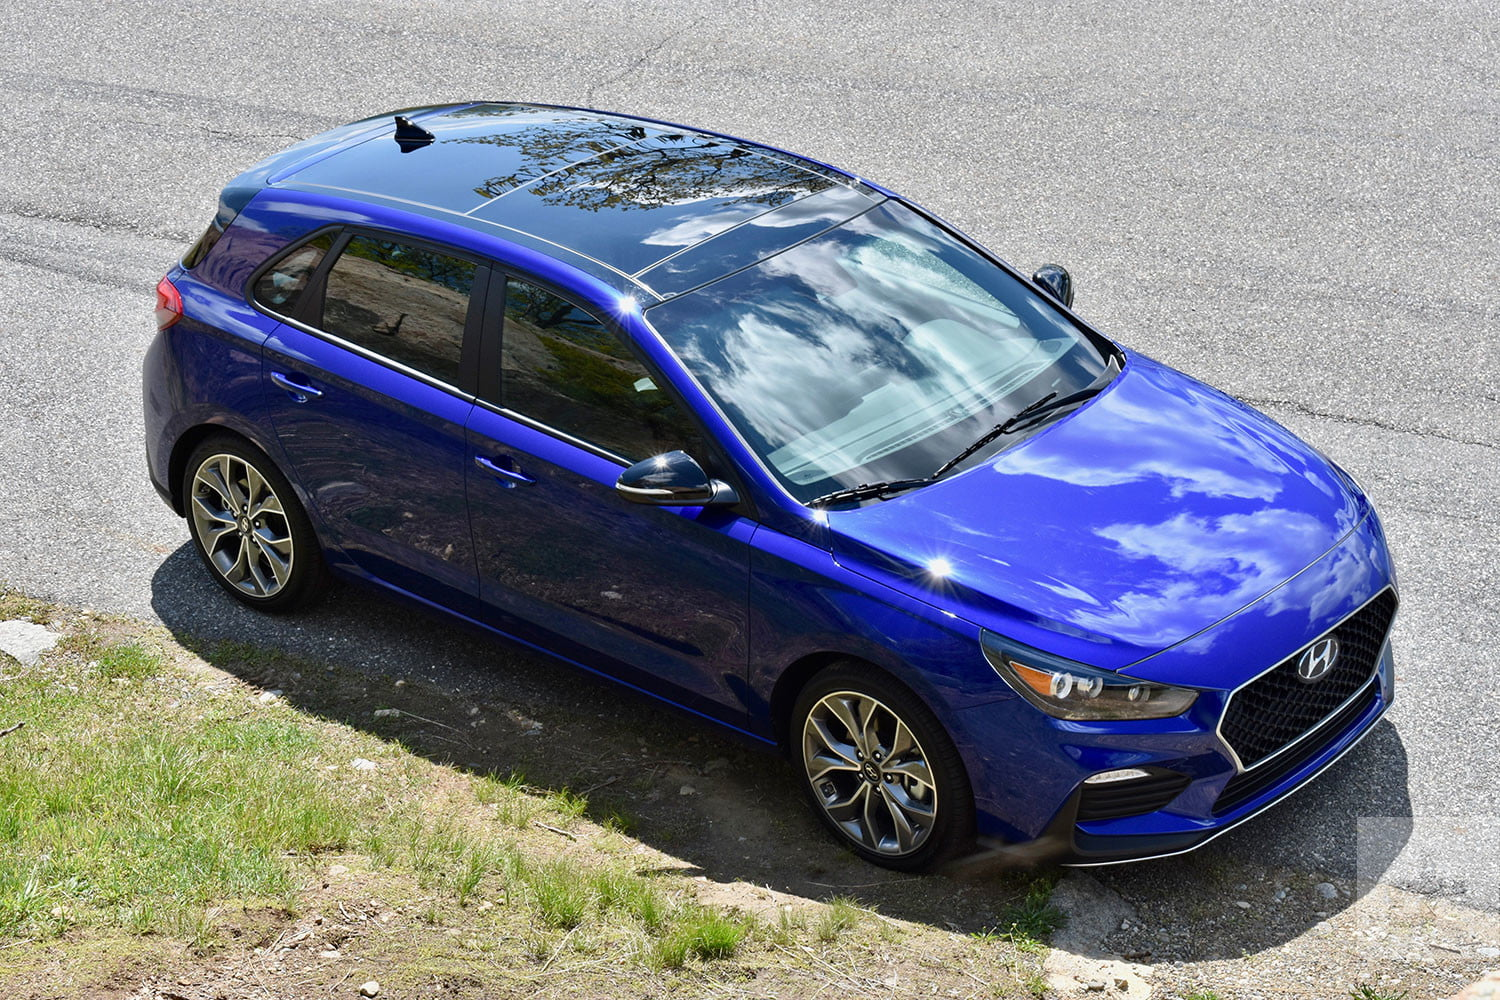 2019 Hyundai Elantra GT N-Line Review: The Case For Basic ...